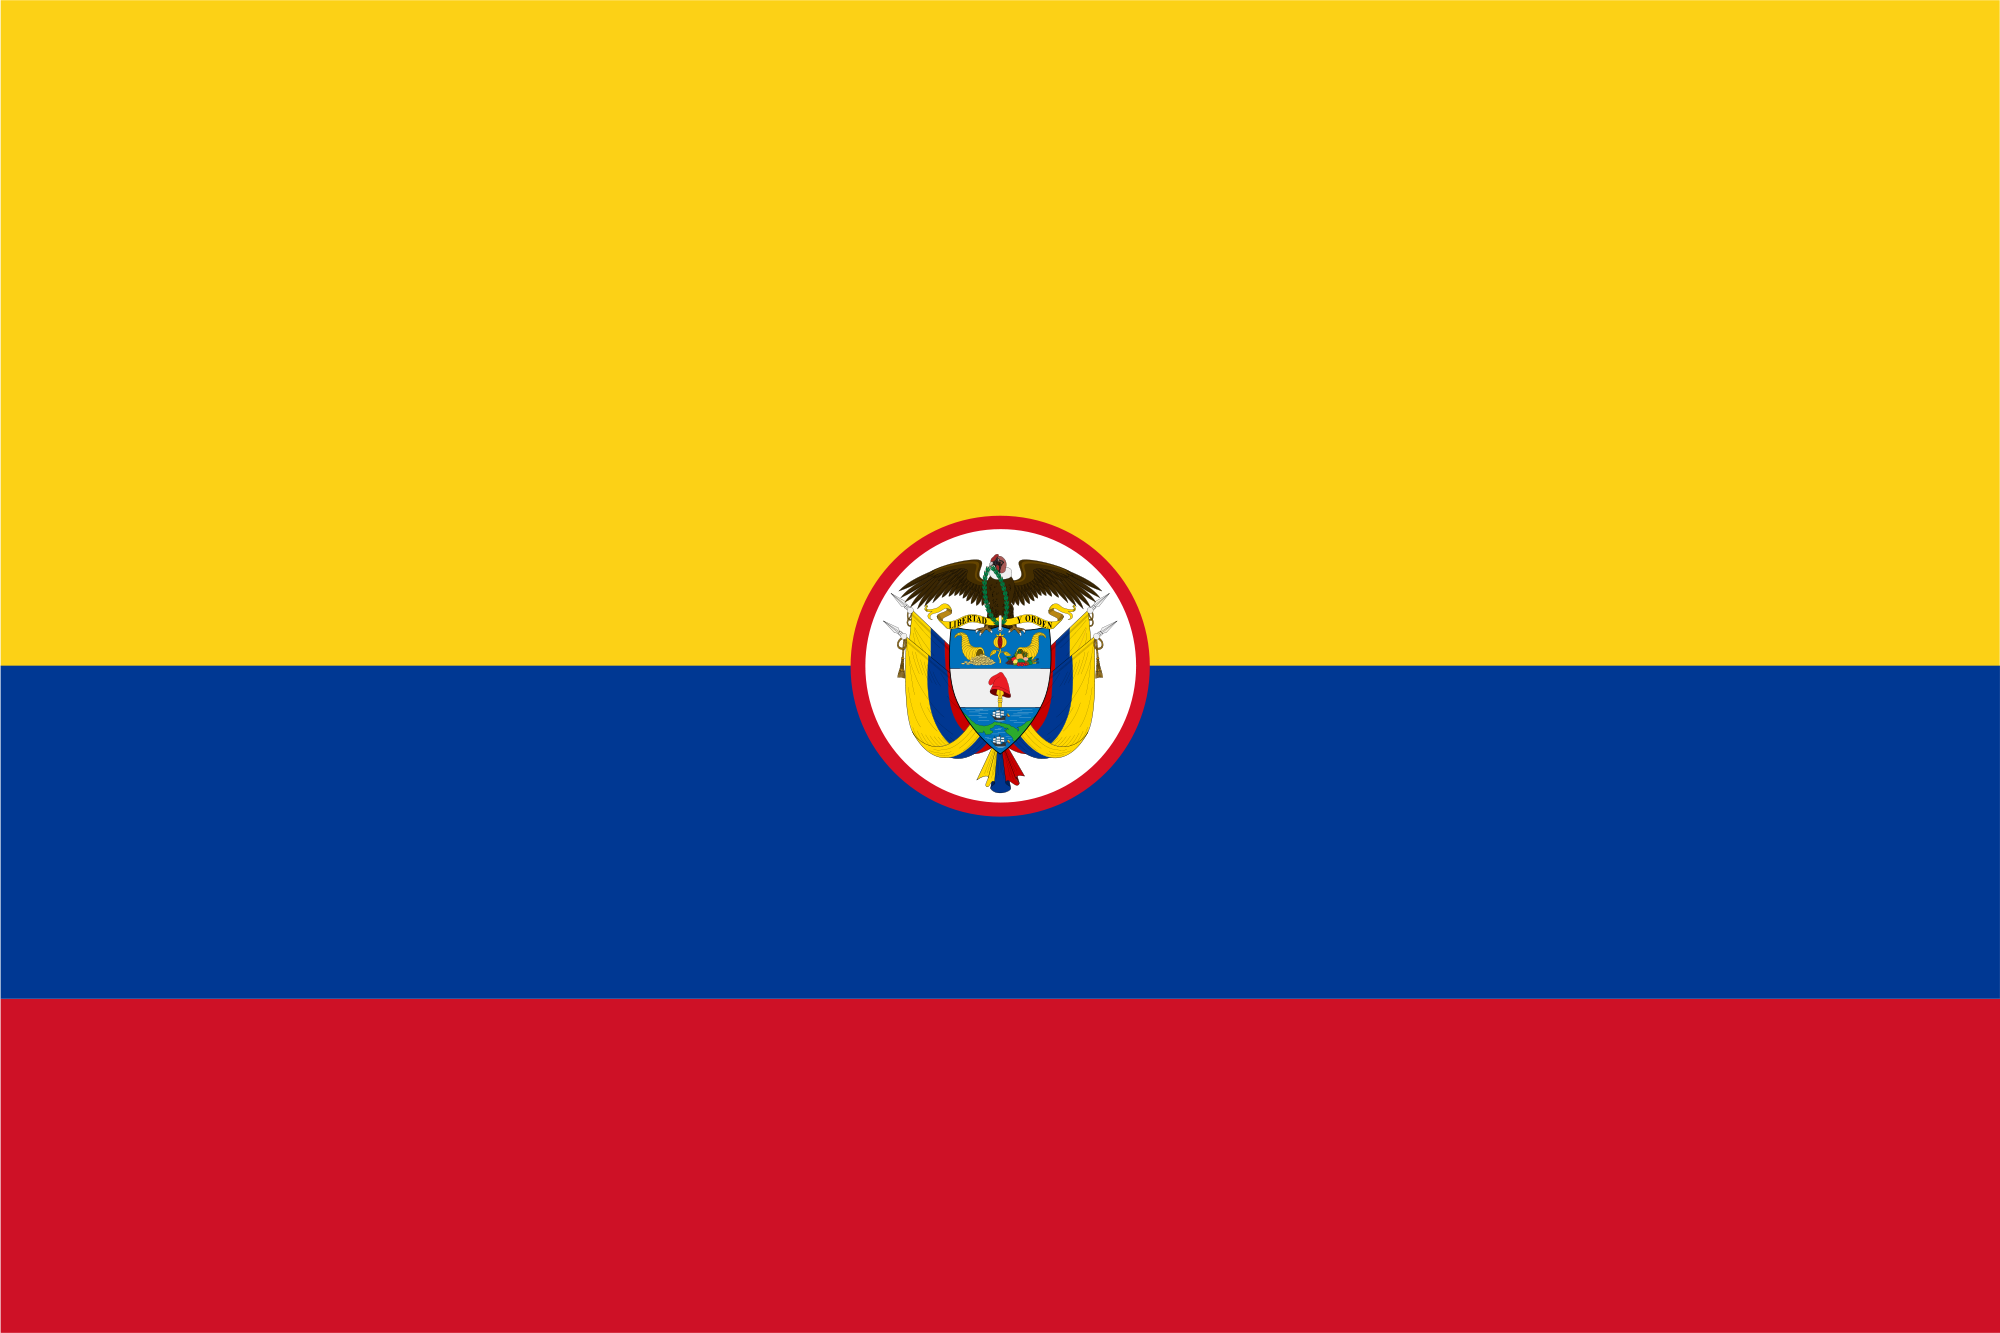 Colombia (Naval ensign)